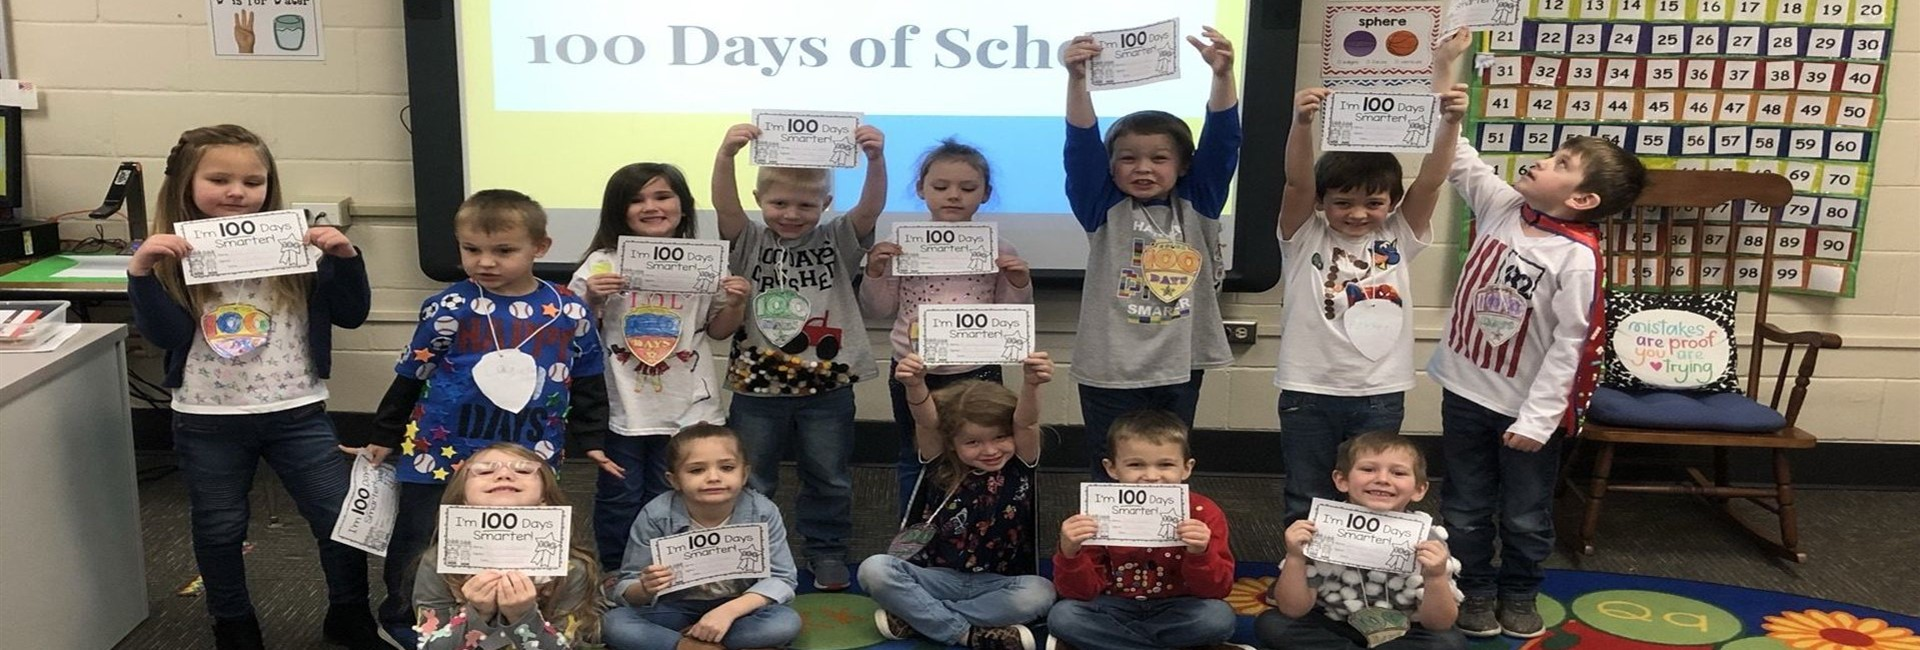 Mrs. Bucher's Class at WES Is Feeling 100 Days Smarter